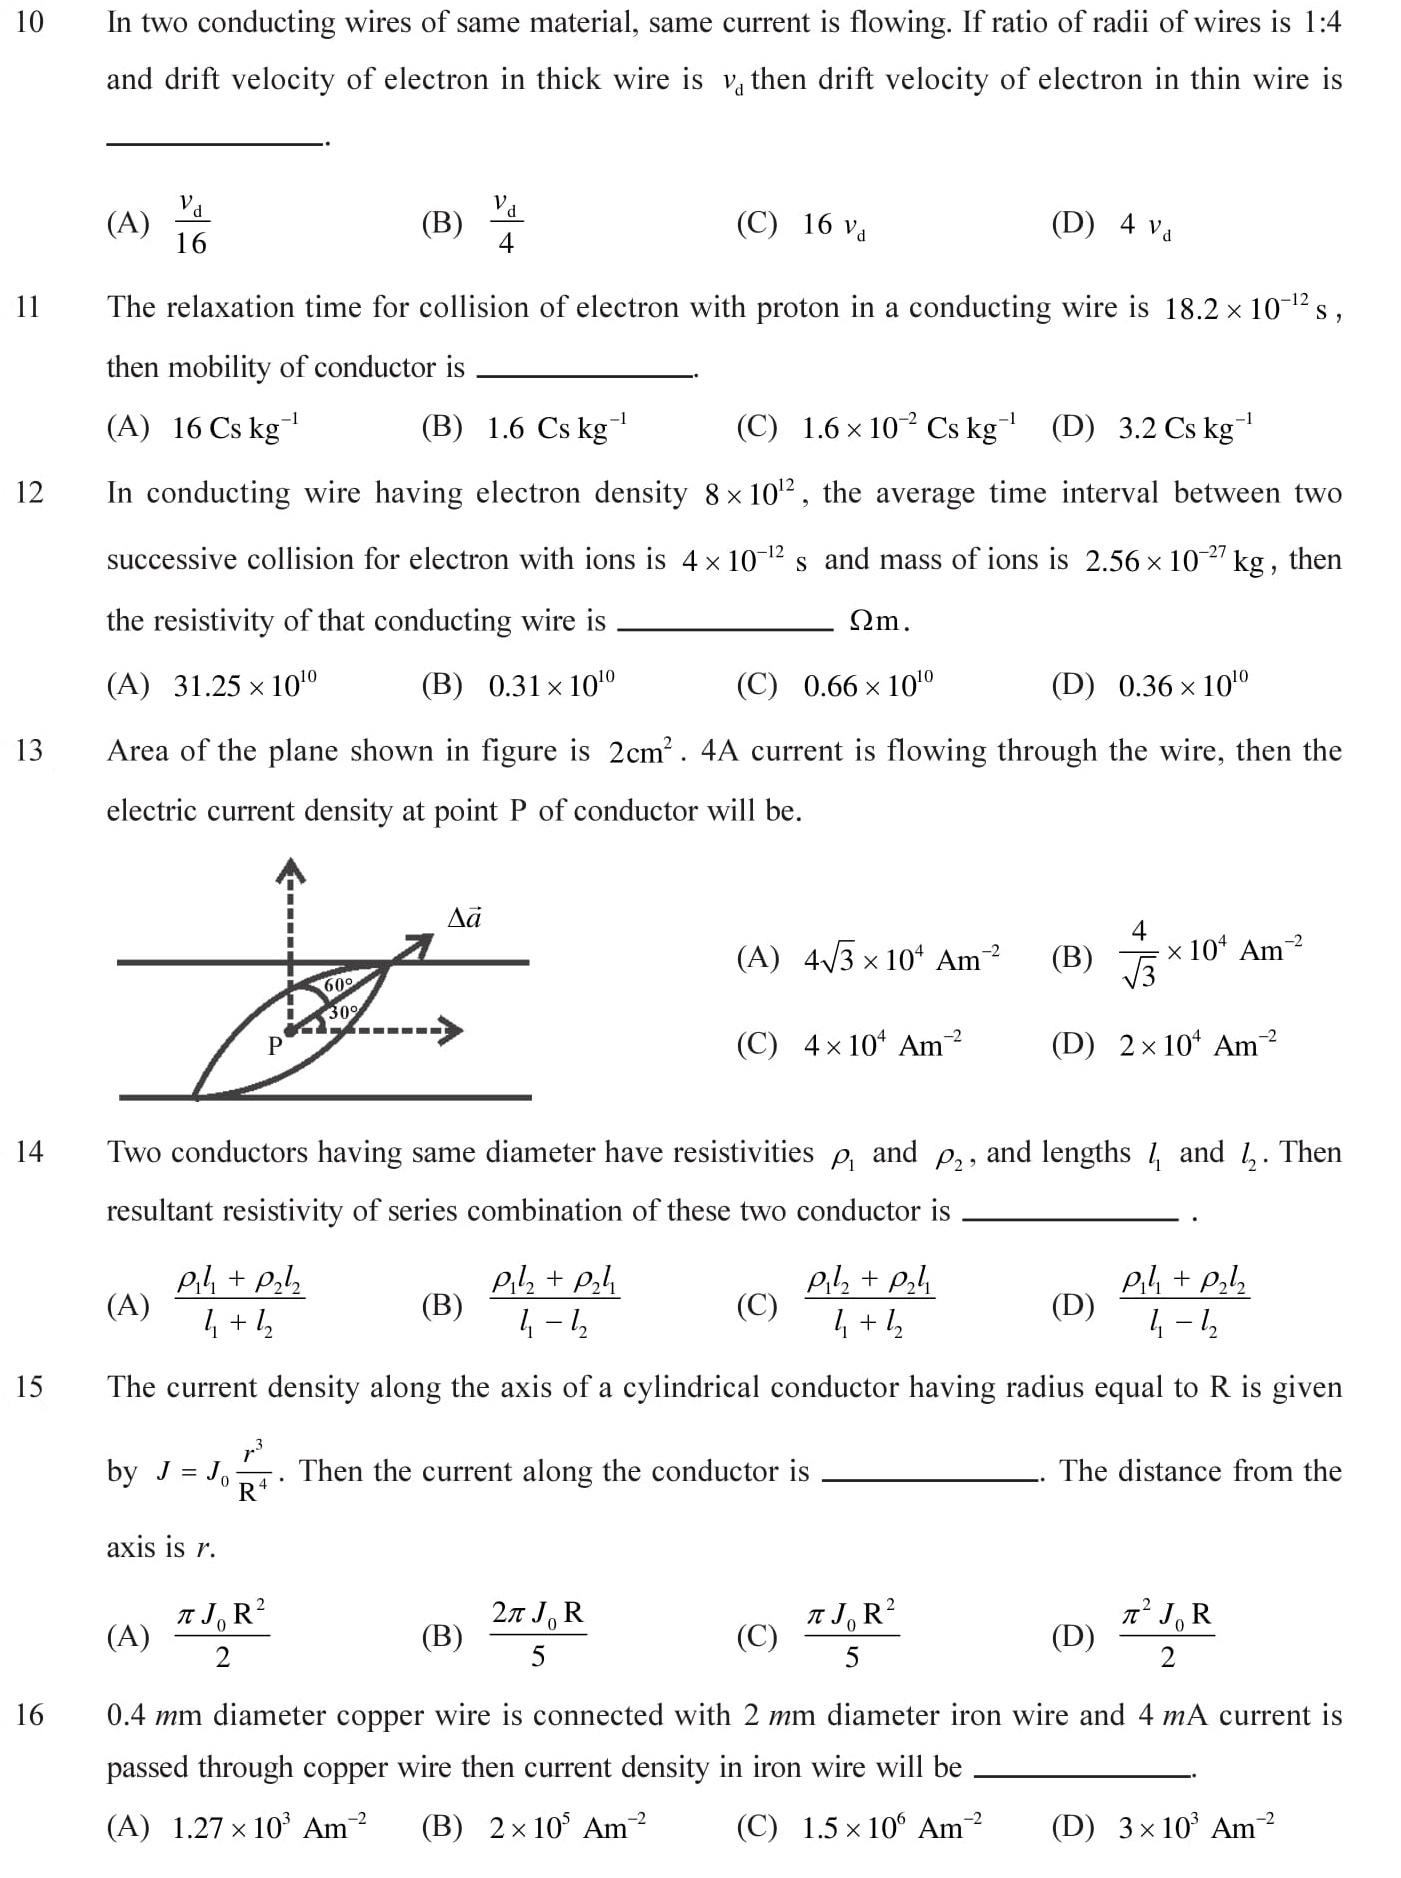 NEET-JEE-IIT-Questions-Current-Electricity-Topic-3